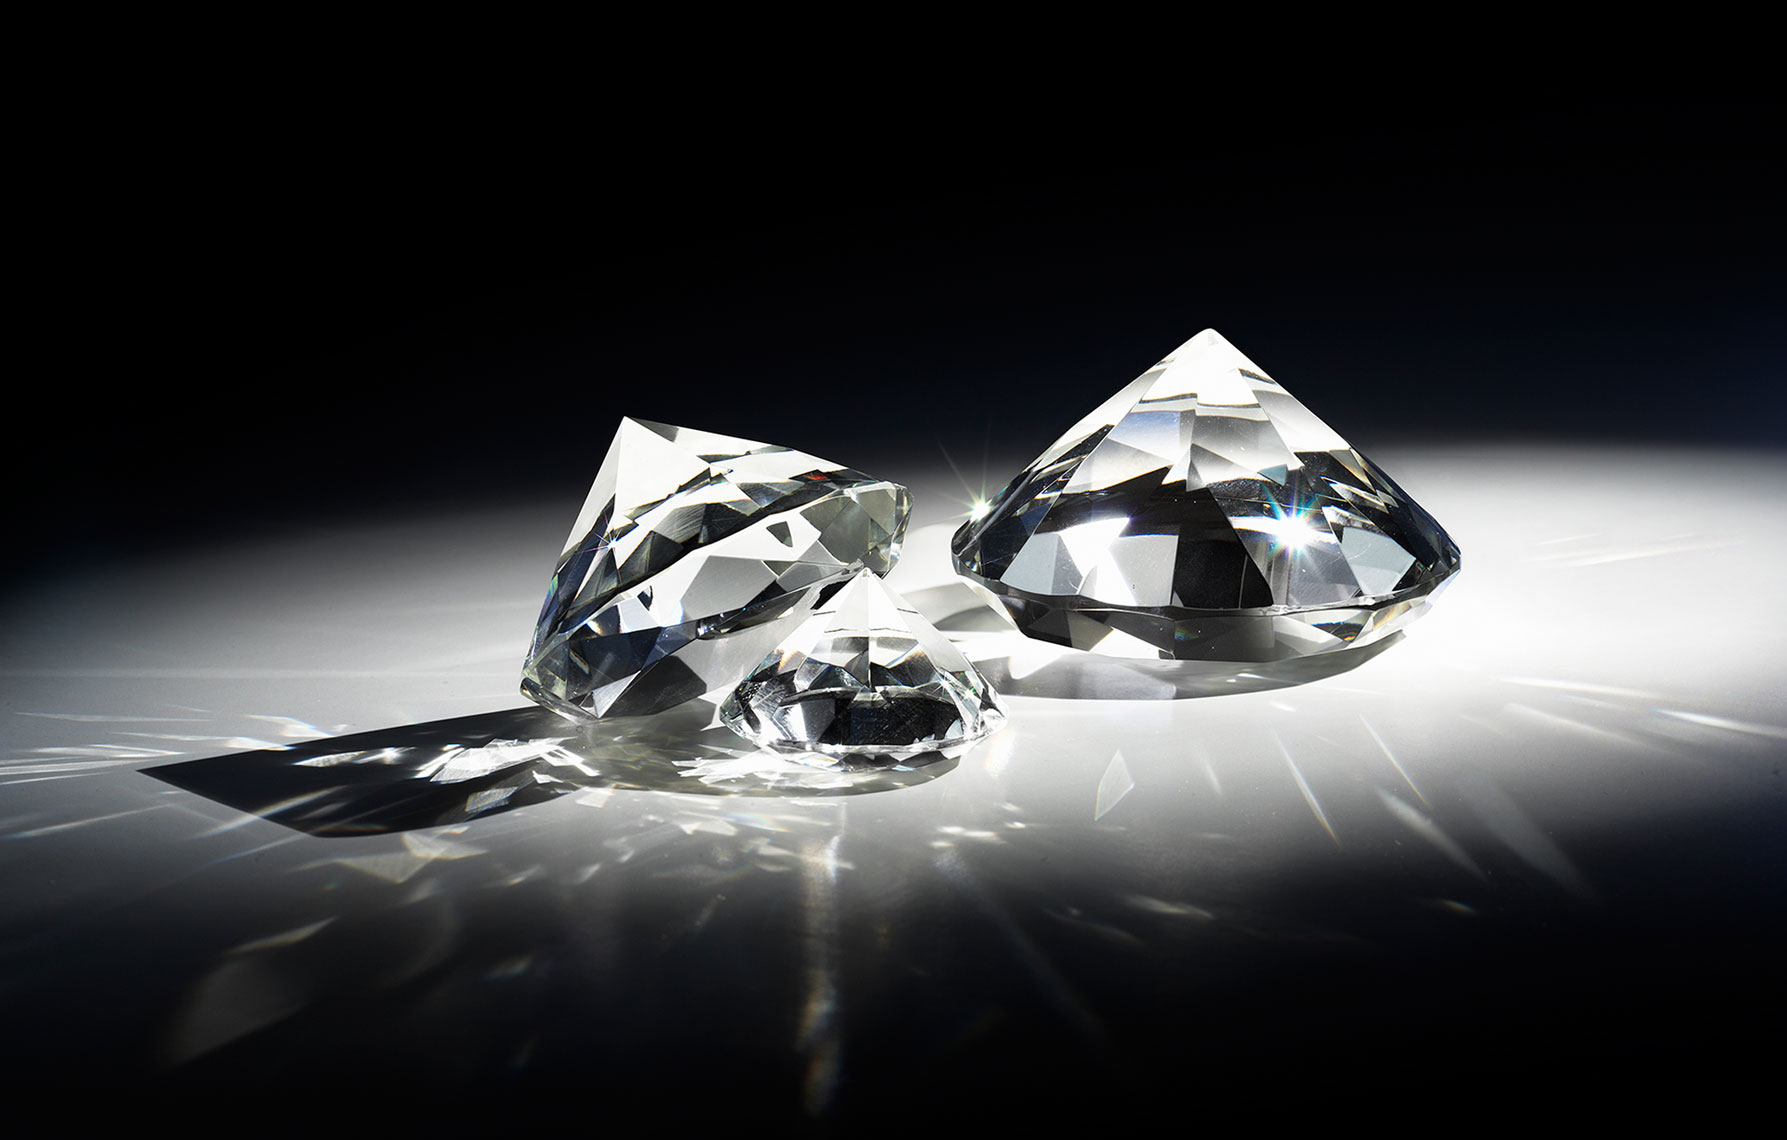 Diamonds-S-0035.jpg